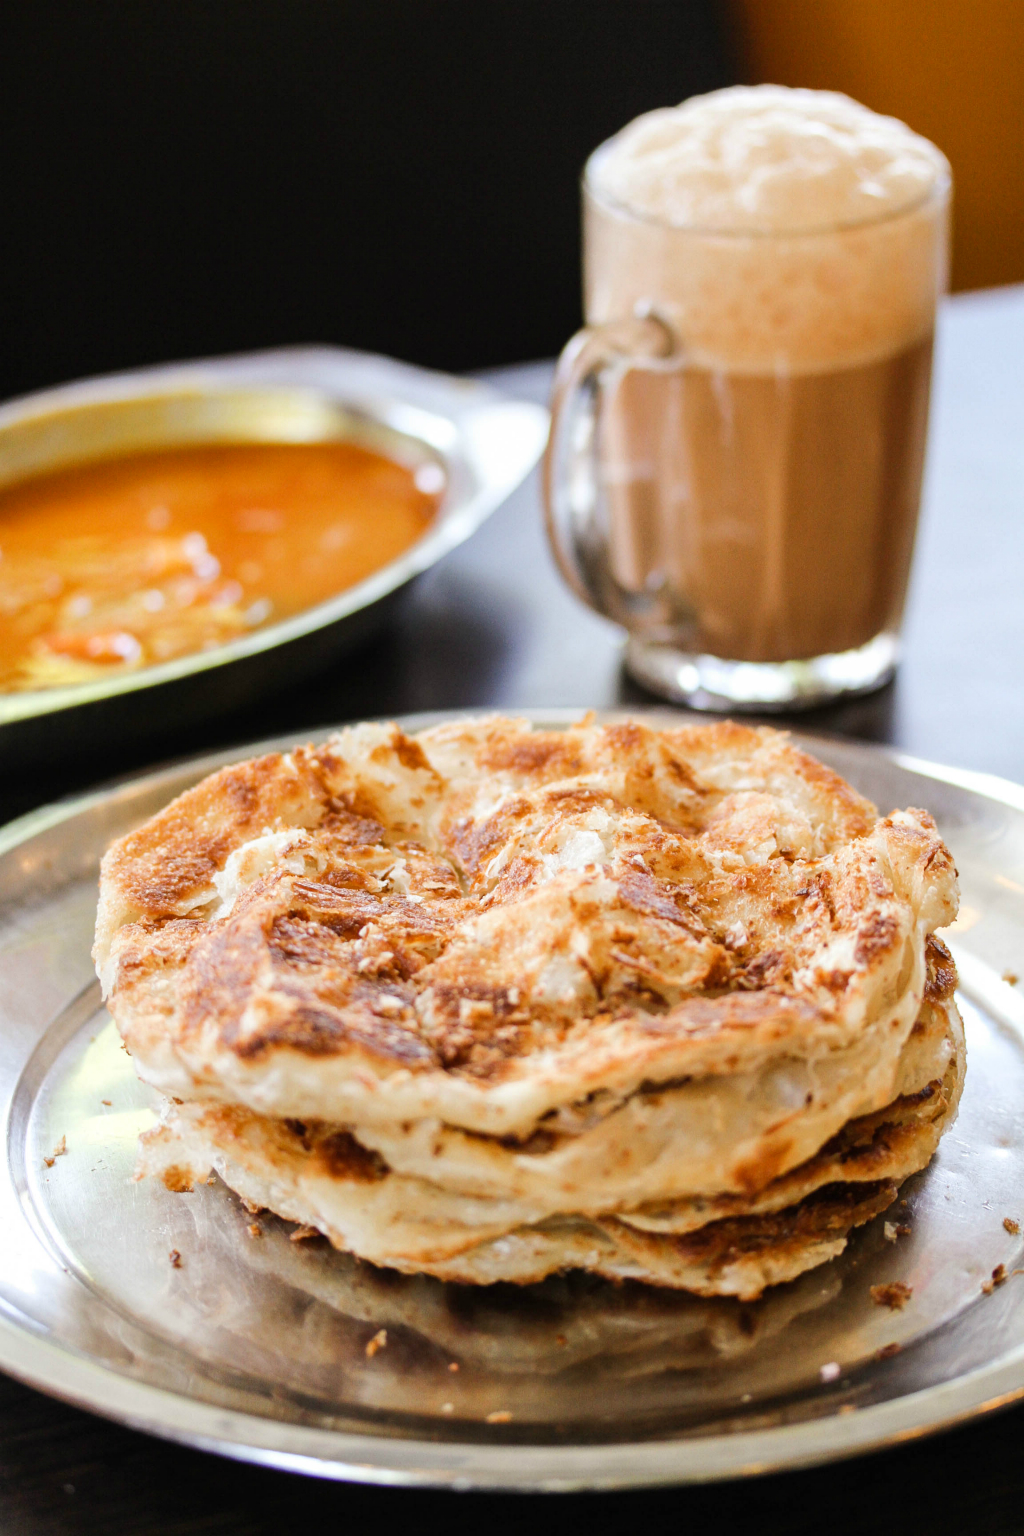 The Prata Place: Plain (Kosong) Prata